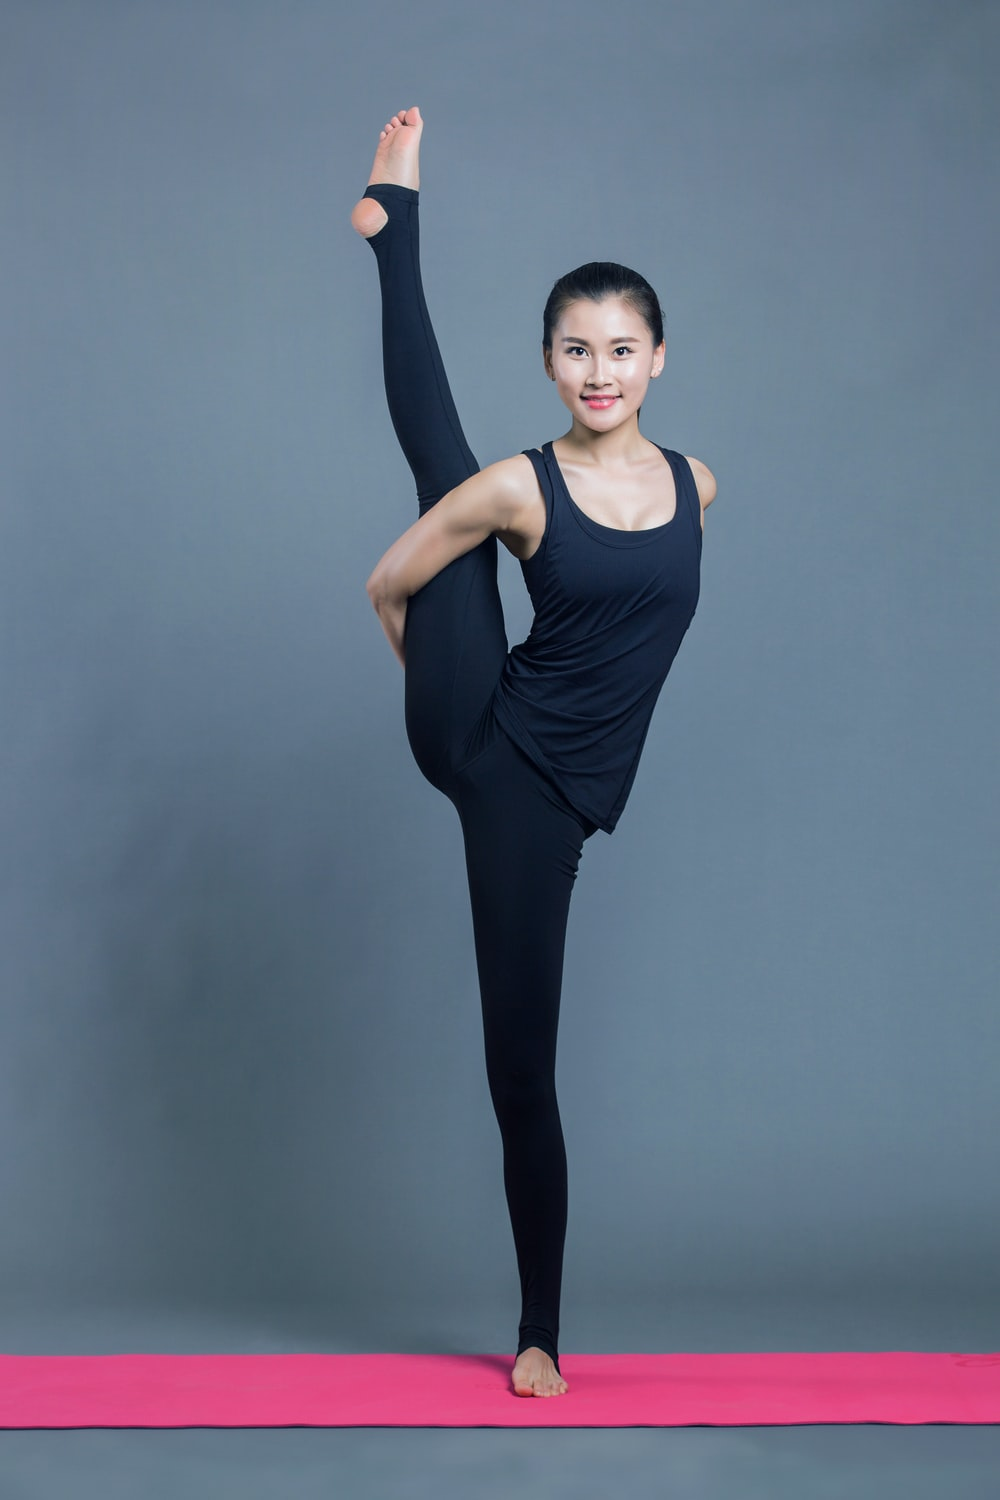 woman in black tank top and black pants raising her right hand